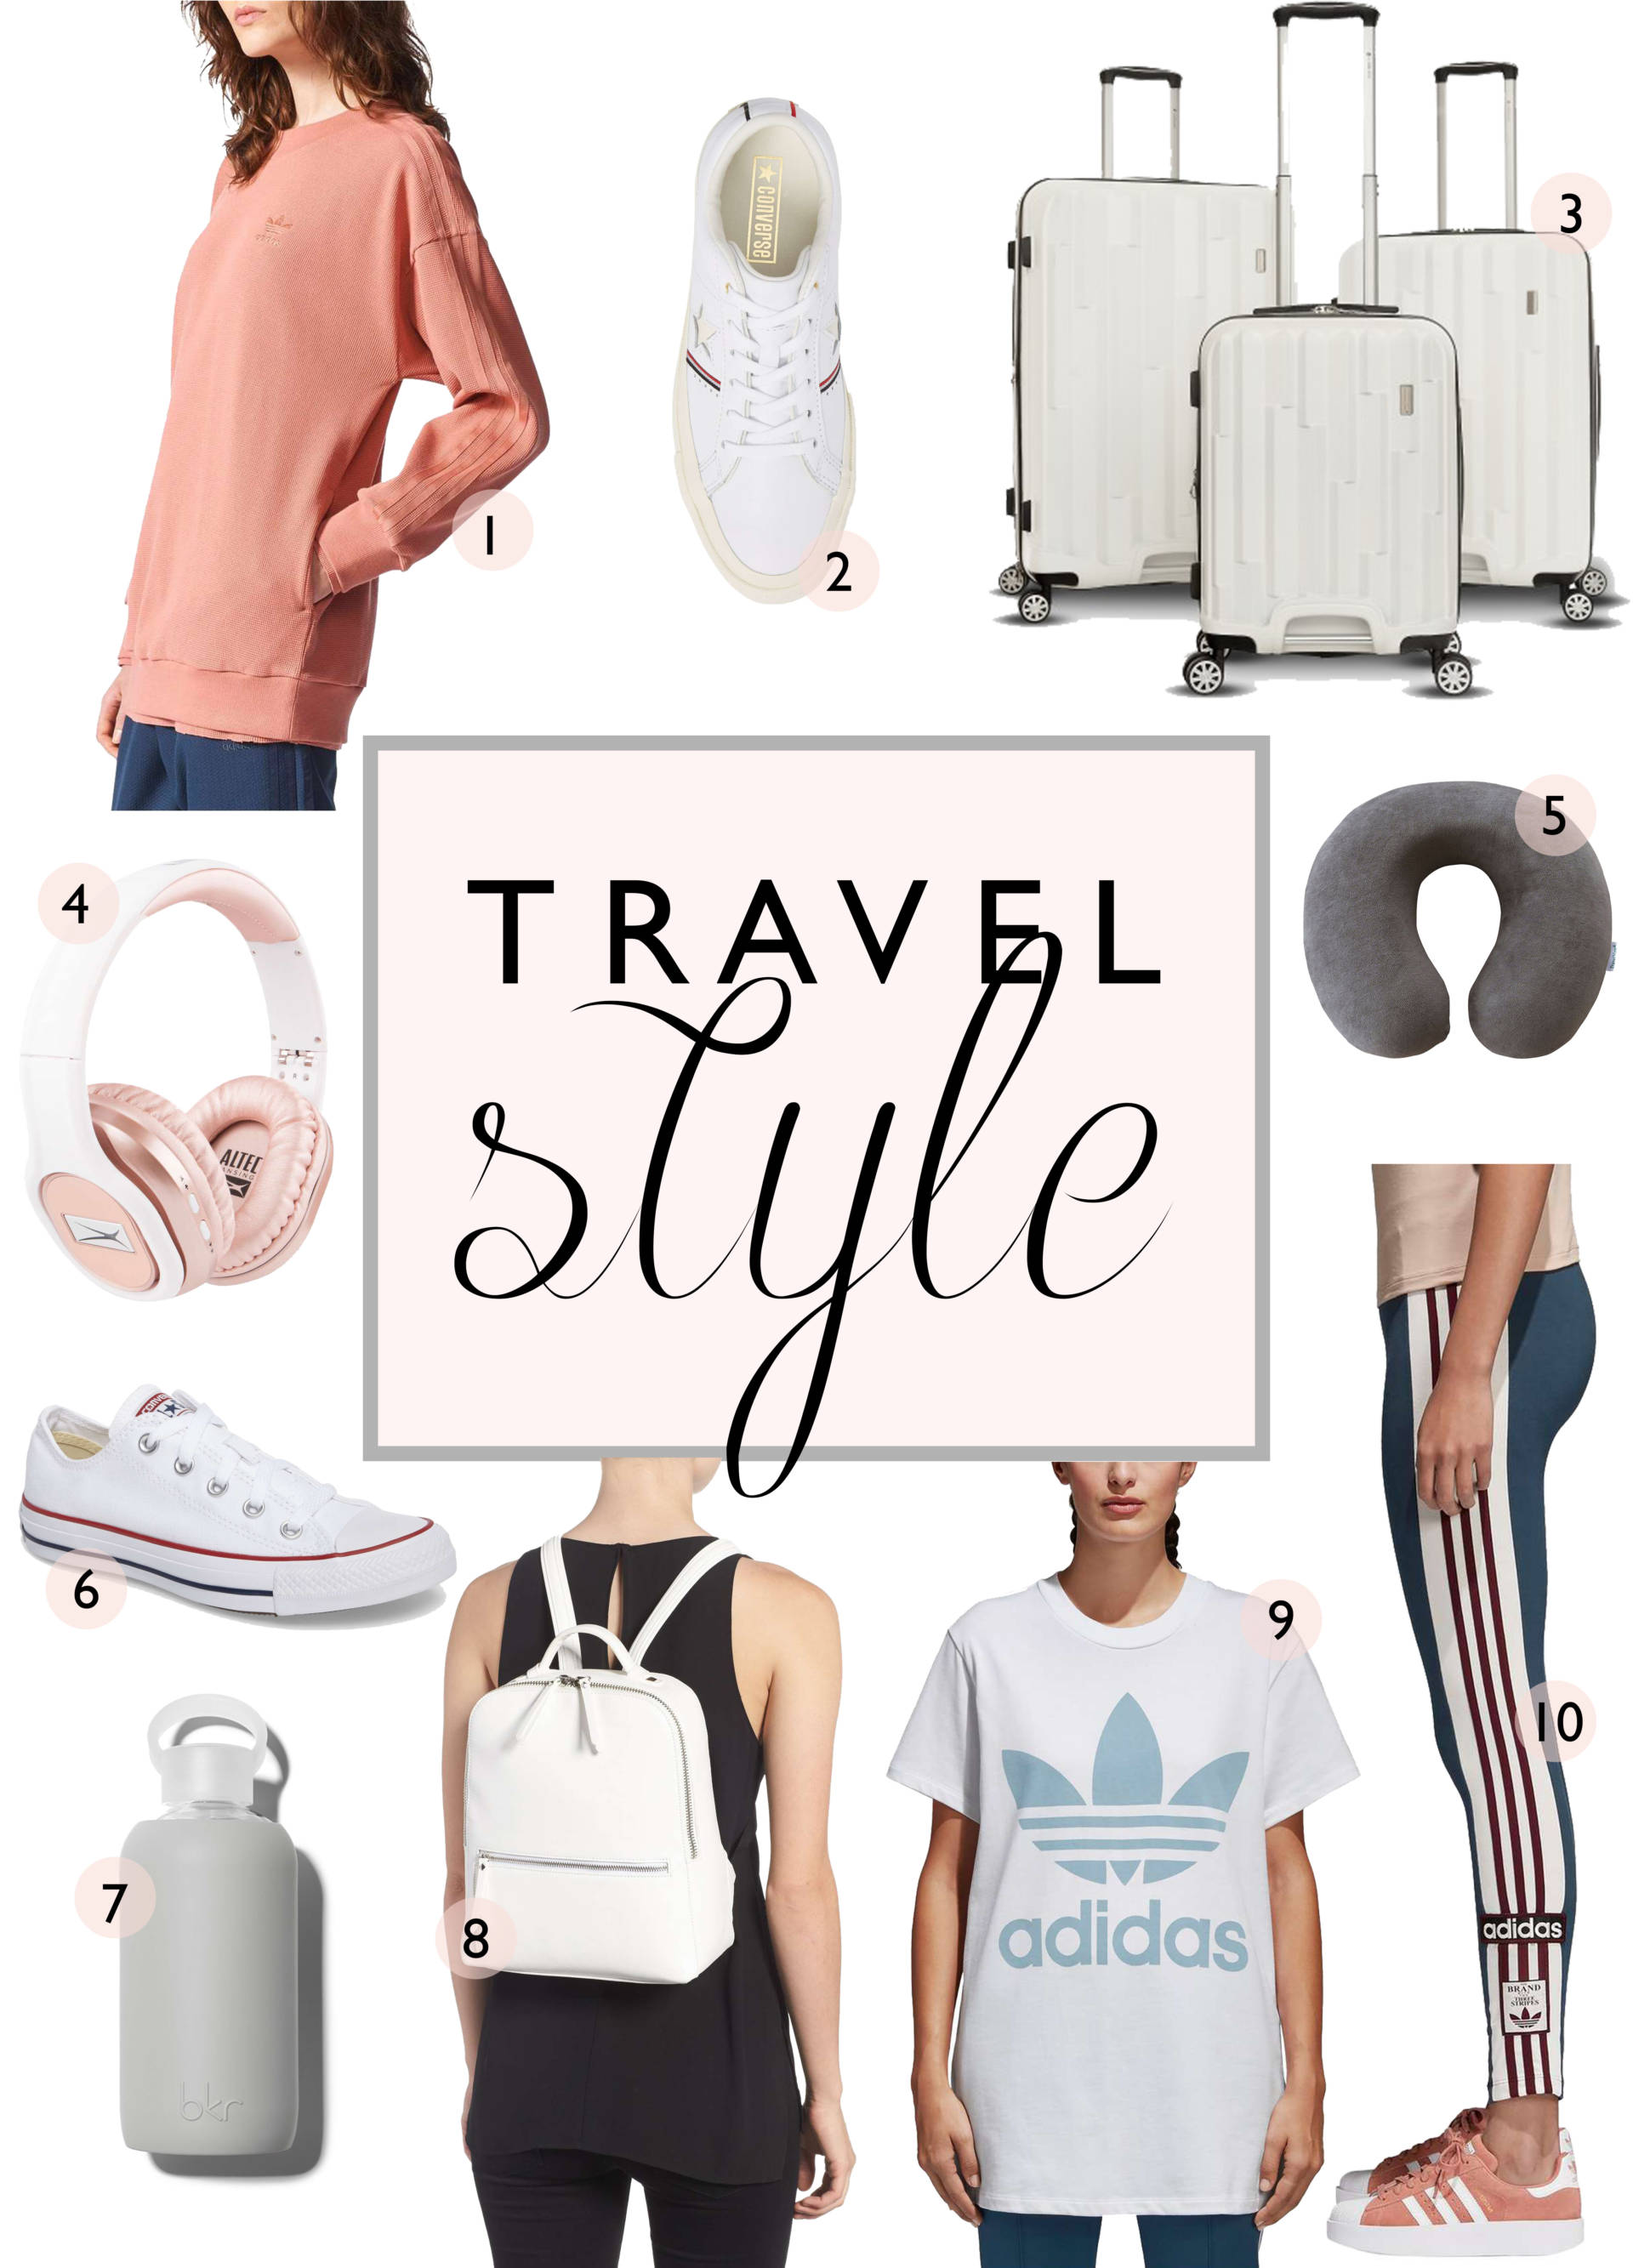 Travel in style at a price you can afford! Sharing key pieces from my wardrobe that I travel in for less than 50.00! No need to break the bank while traveling in style!